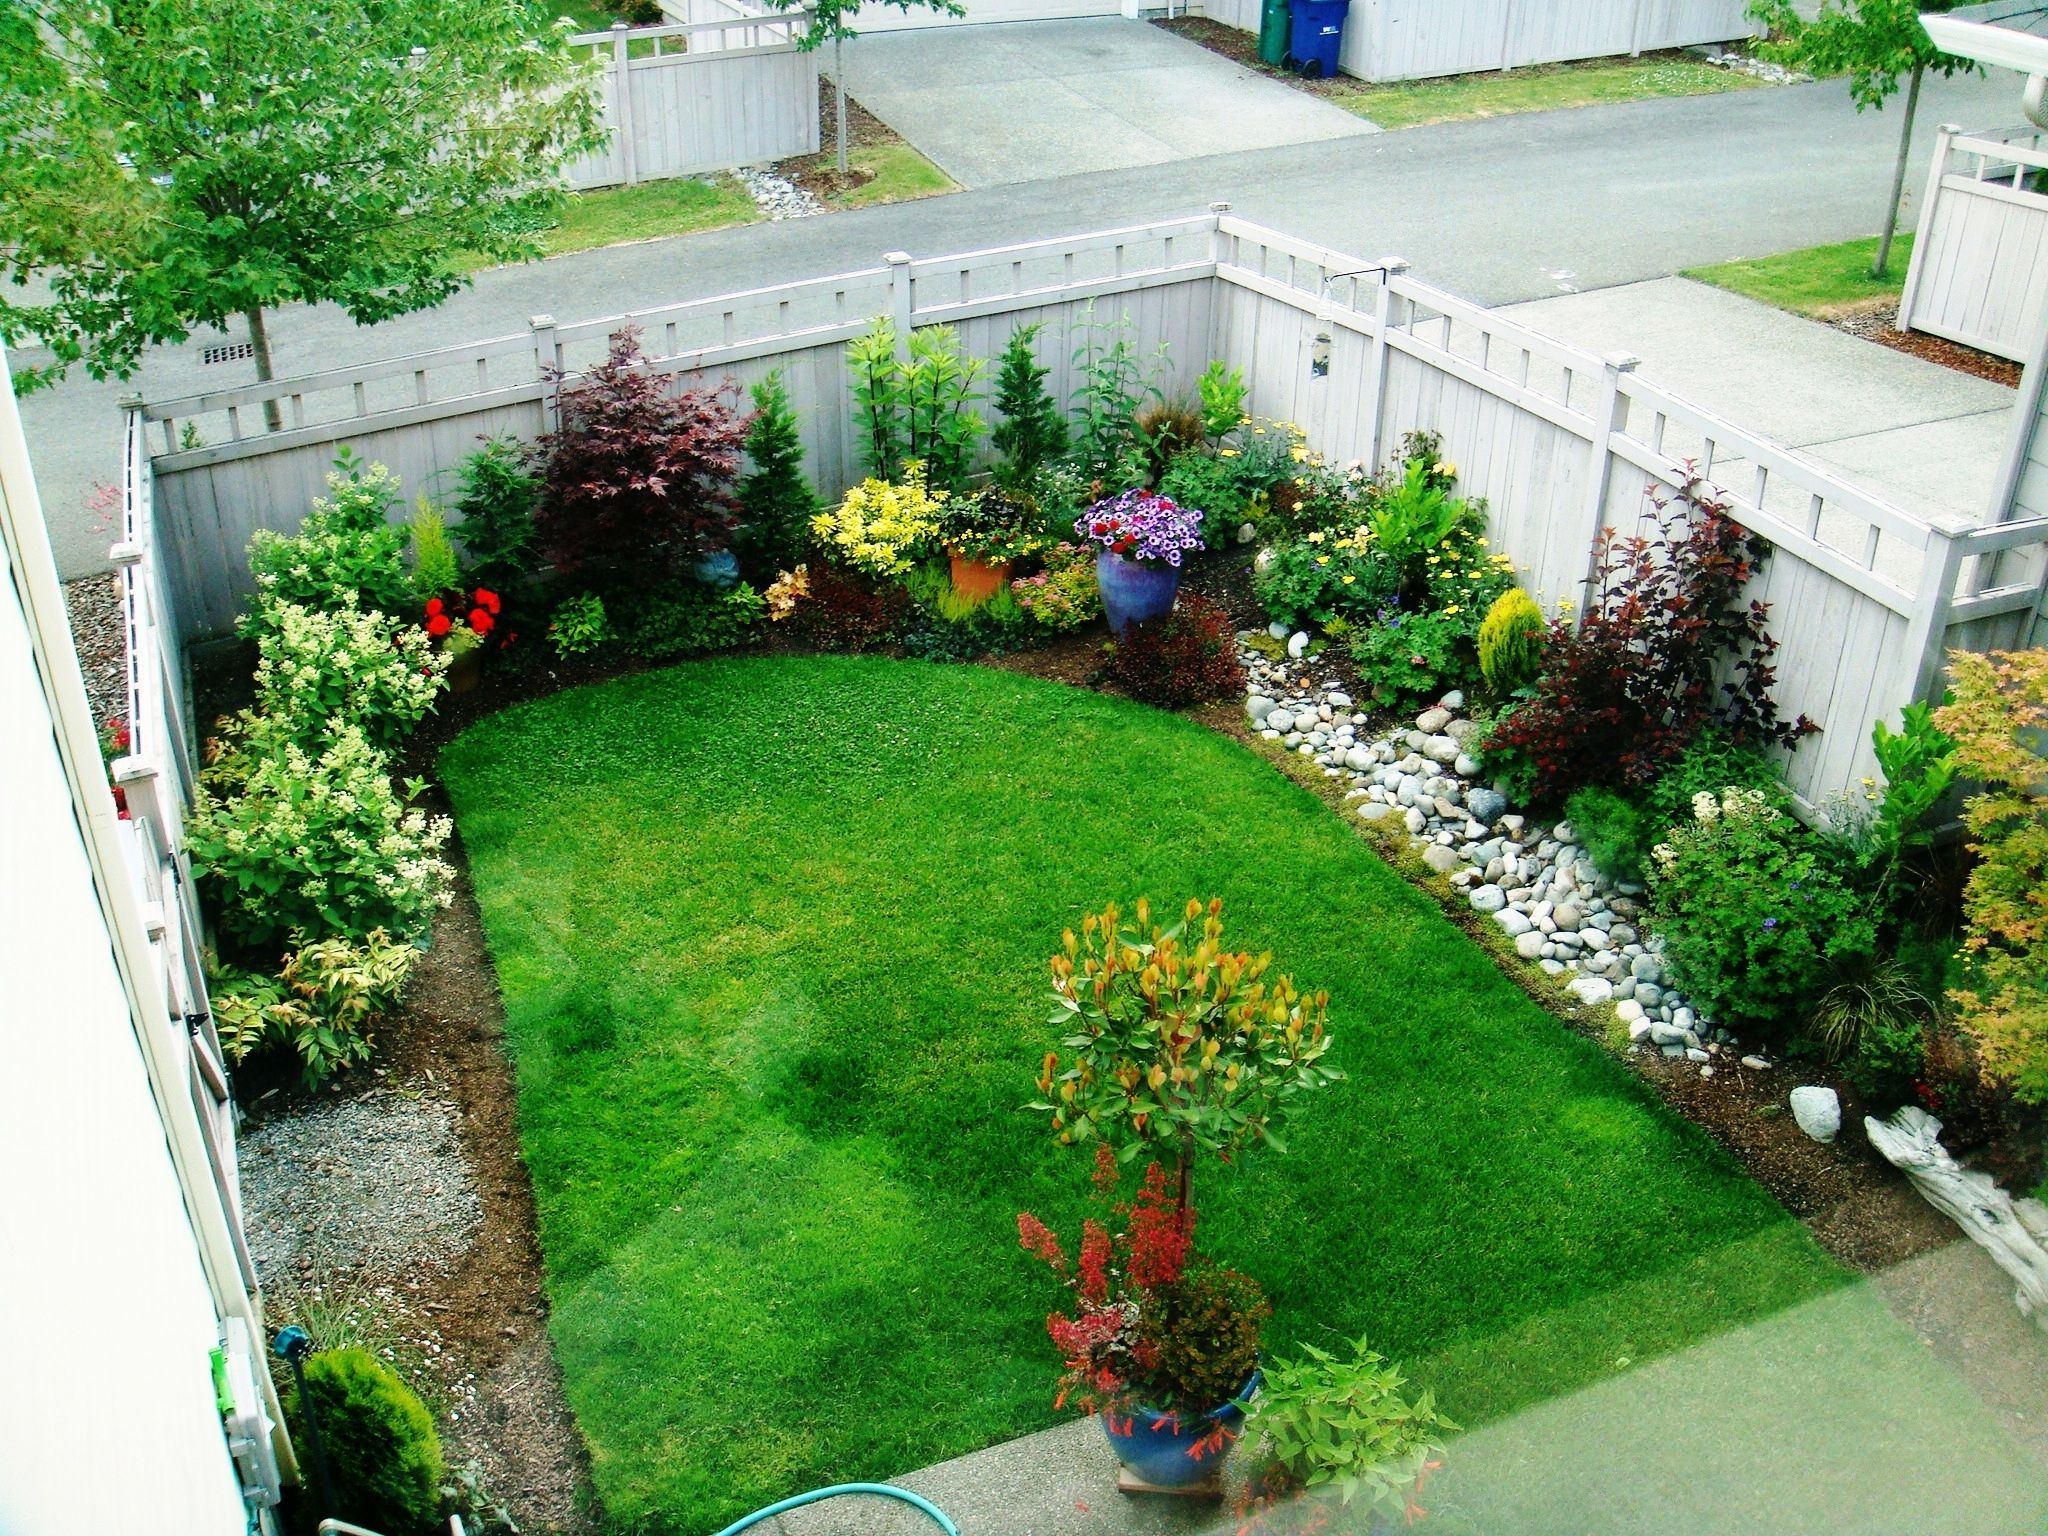 Garden Design Backyard small-back-garden-design-ideas-uk-white-bgarden-design-backyardb